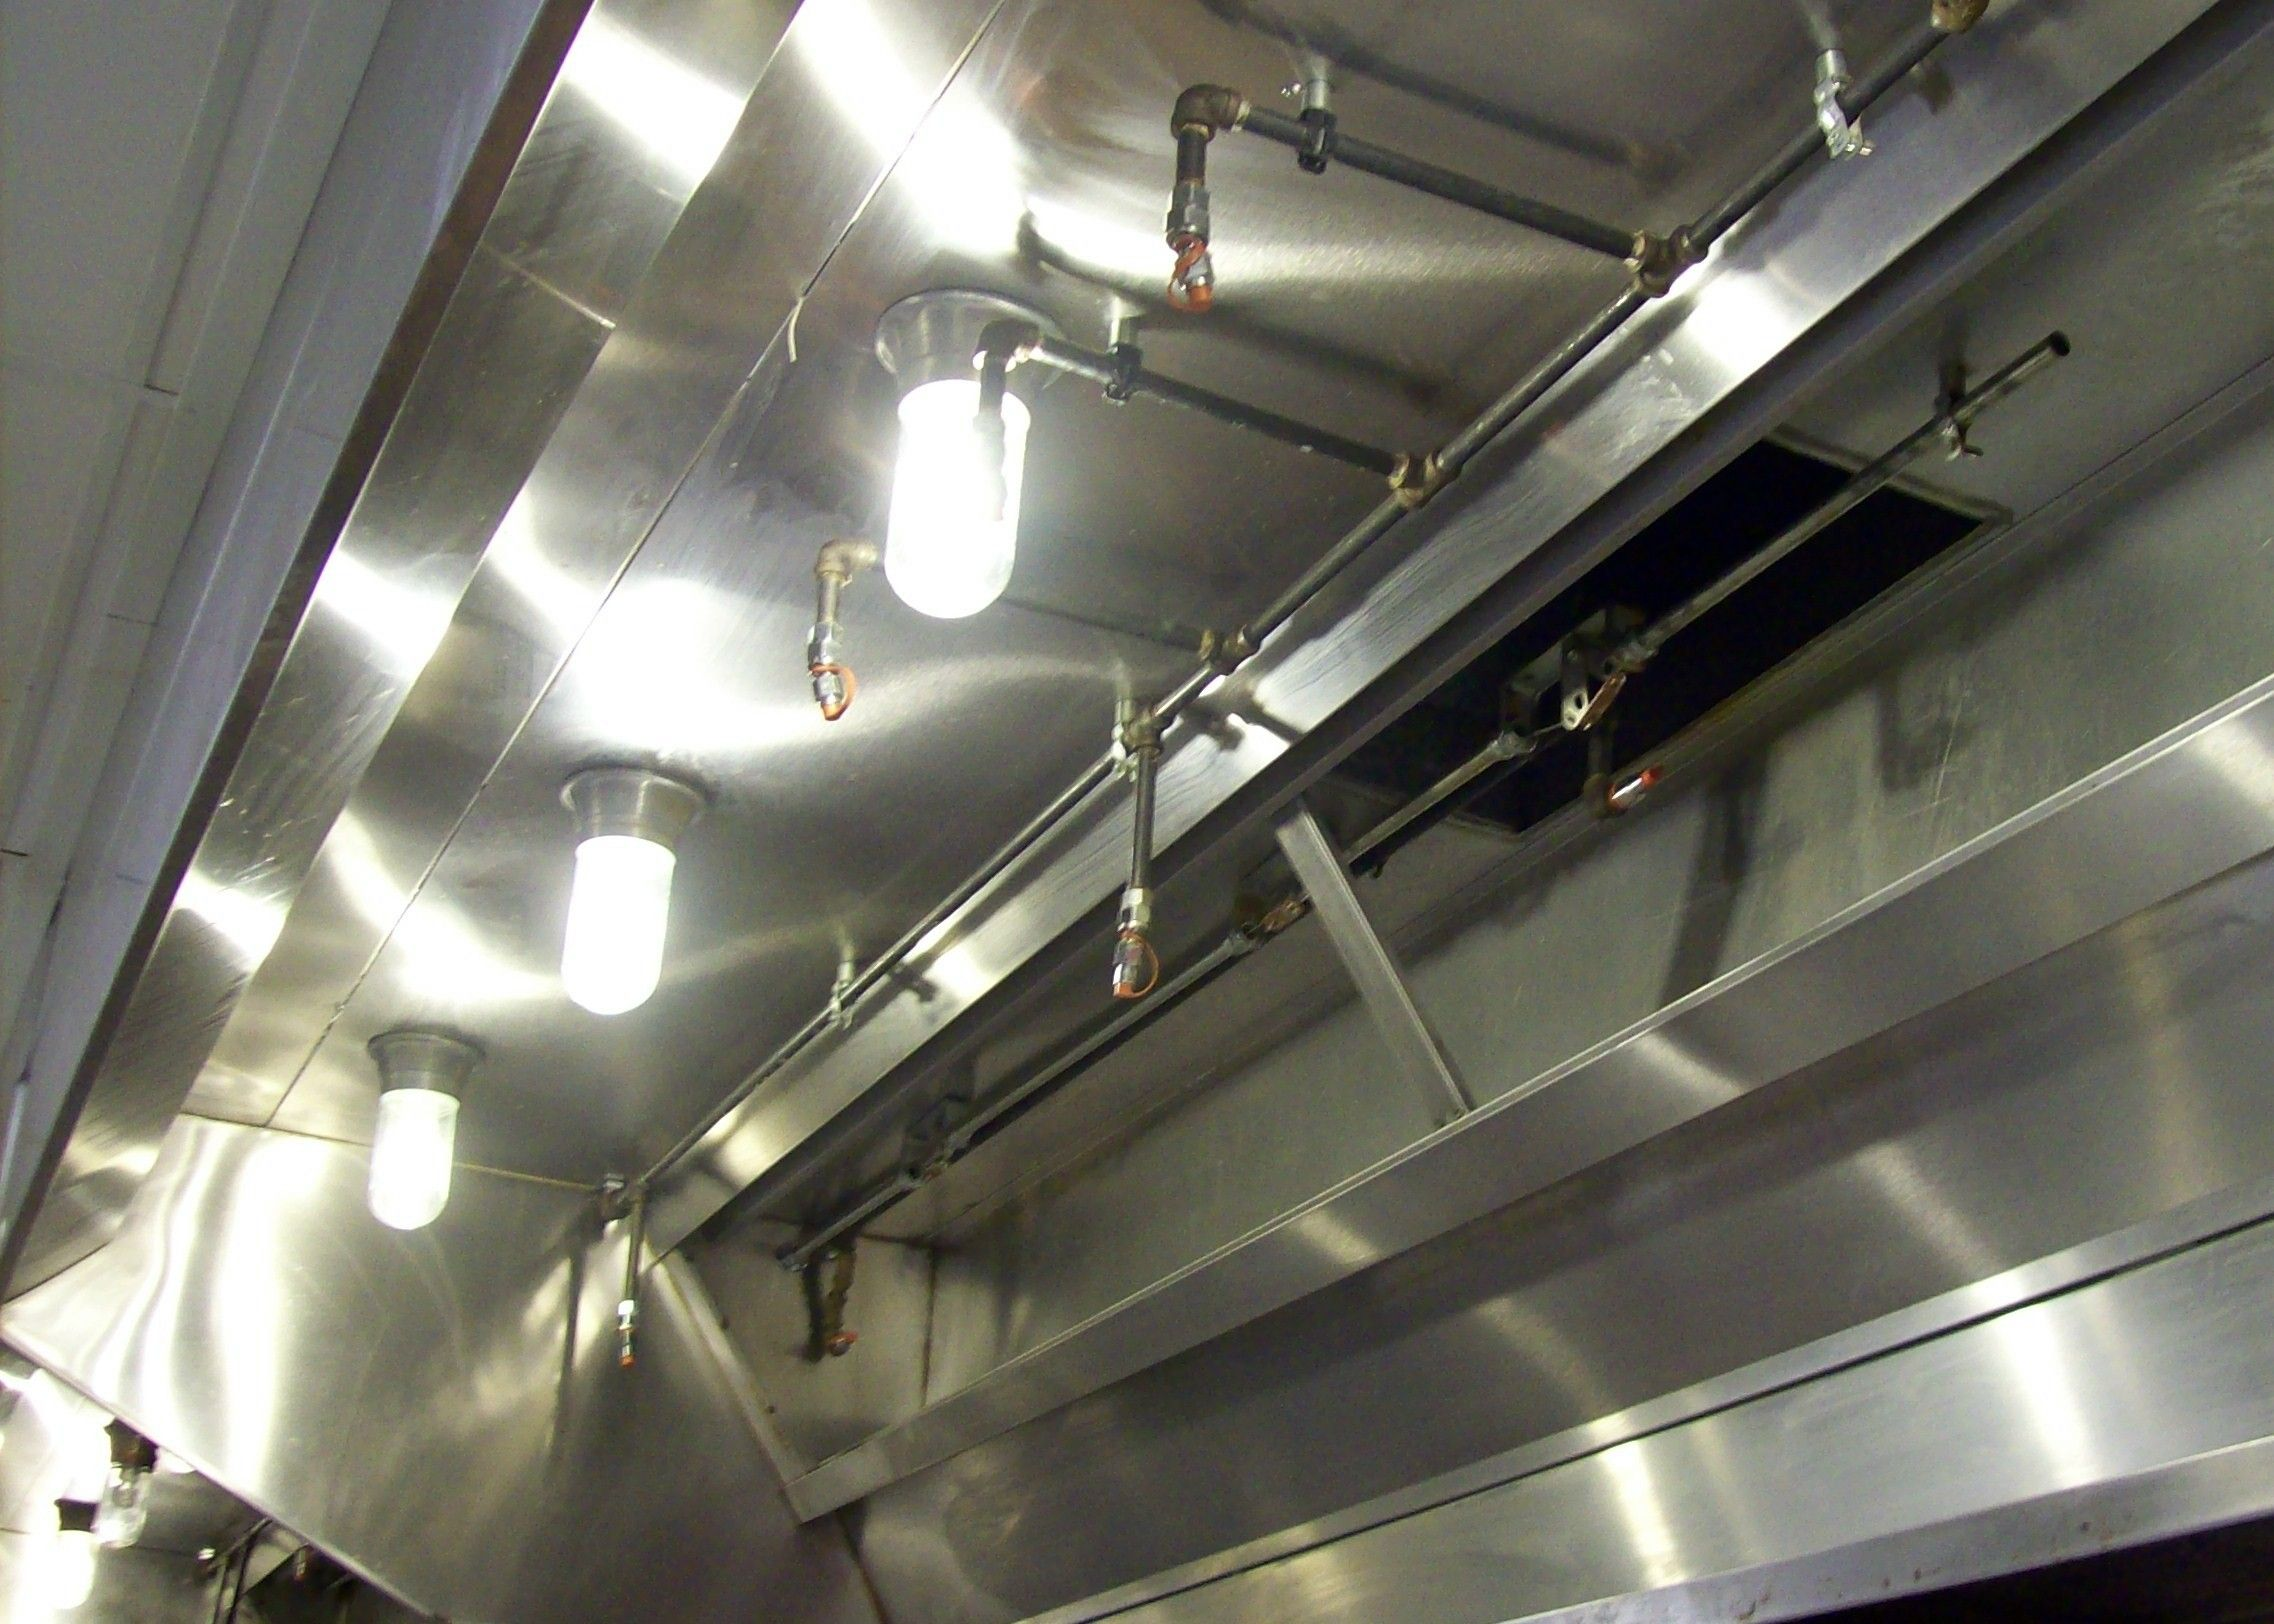 Commercial kitchen hood degreasing rocky mountain - Commercial kitchen vent hood designs ...